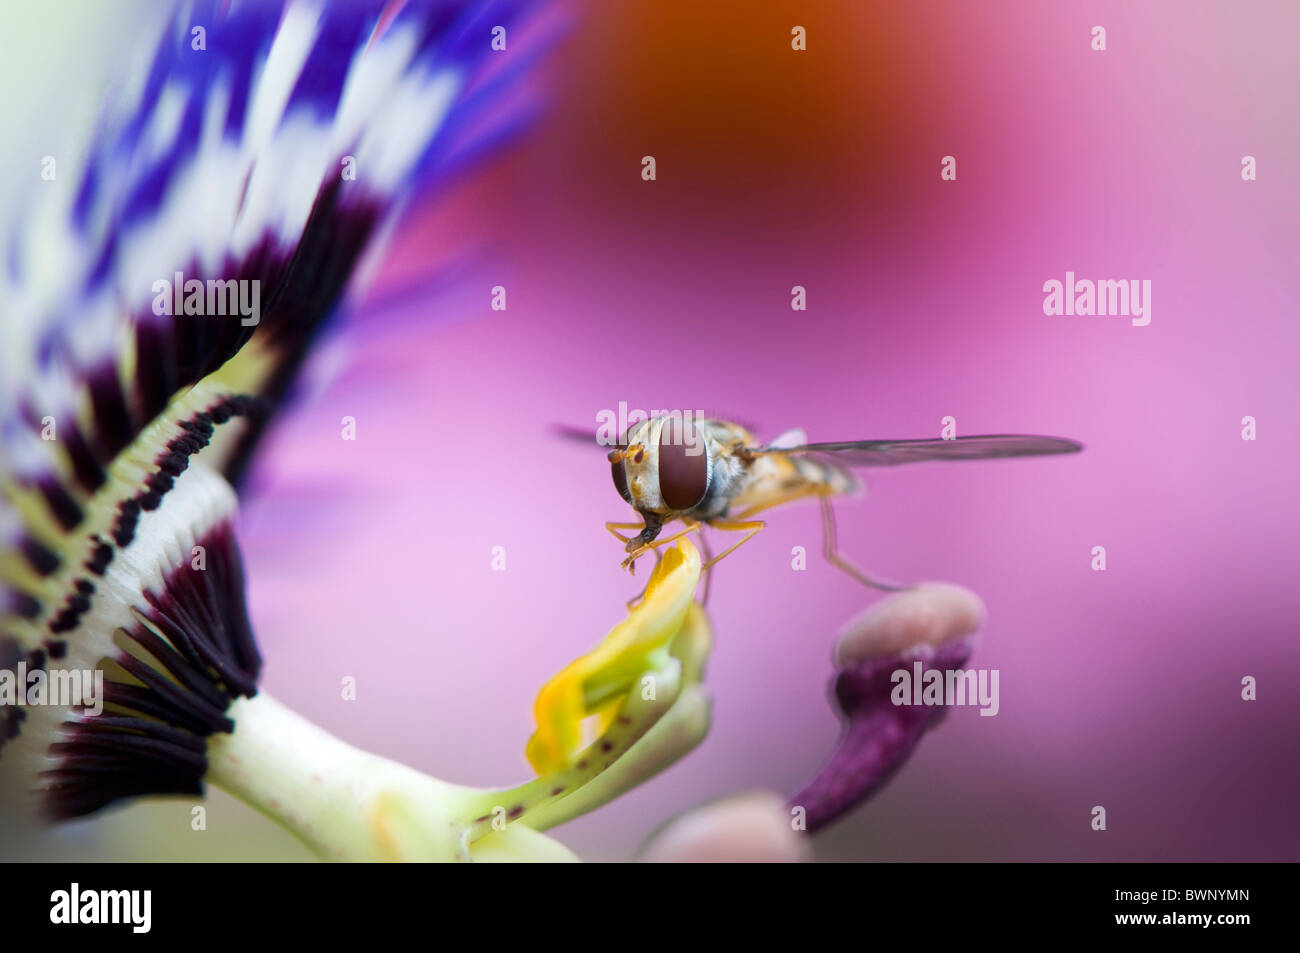 A single hover fly - flower fly or syrphid fiy collecting pollen from a Passion flower - Passiflora cerulea Caerulea - Stock Image